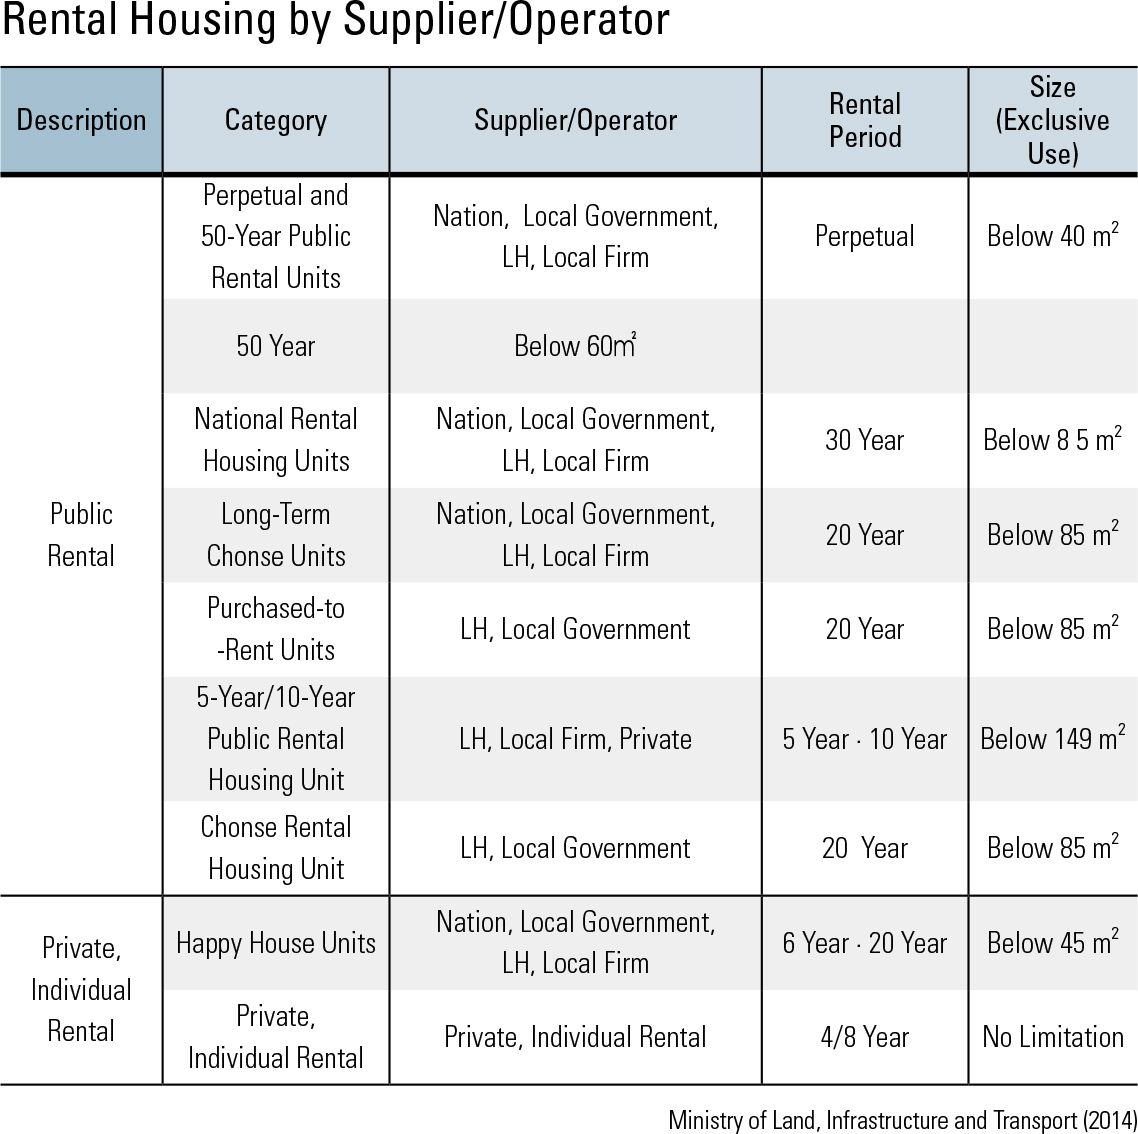 Rental Housing by Supplier/Operator